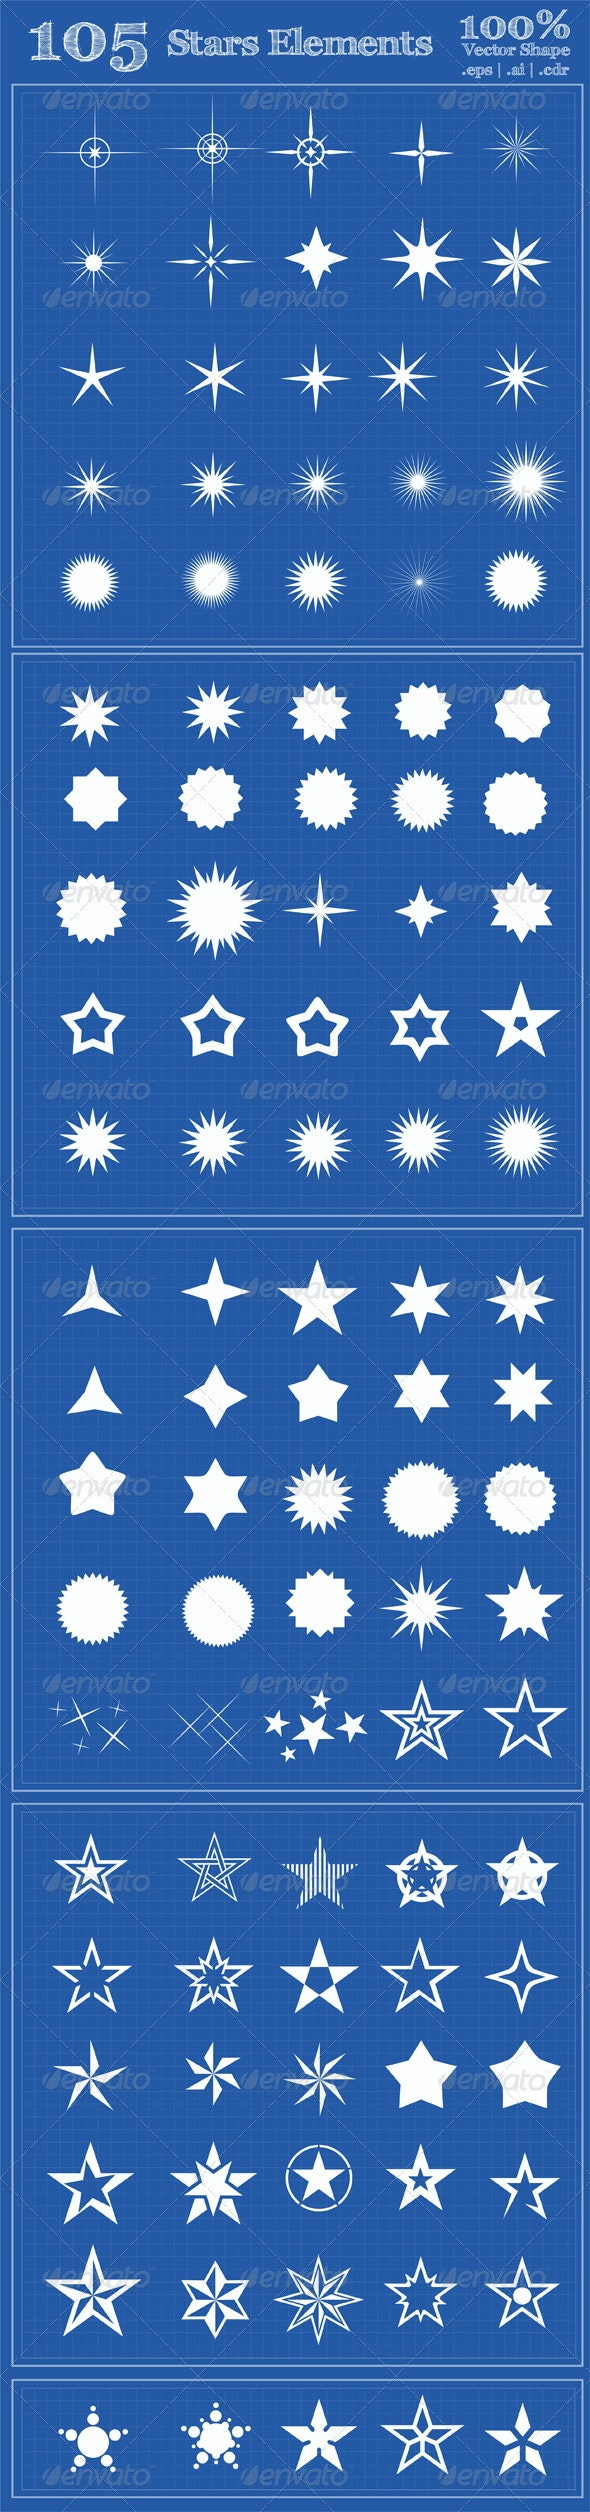 105 Stars Element - Decorative Symbols Decorative